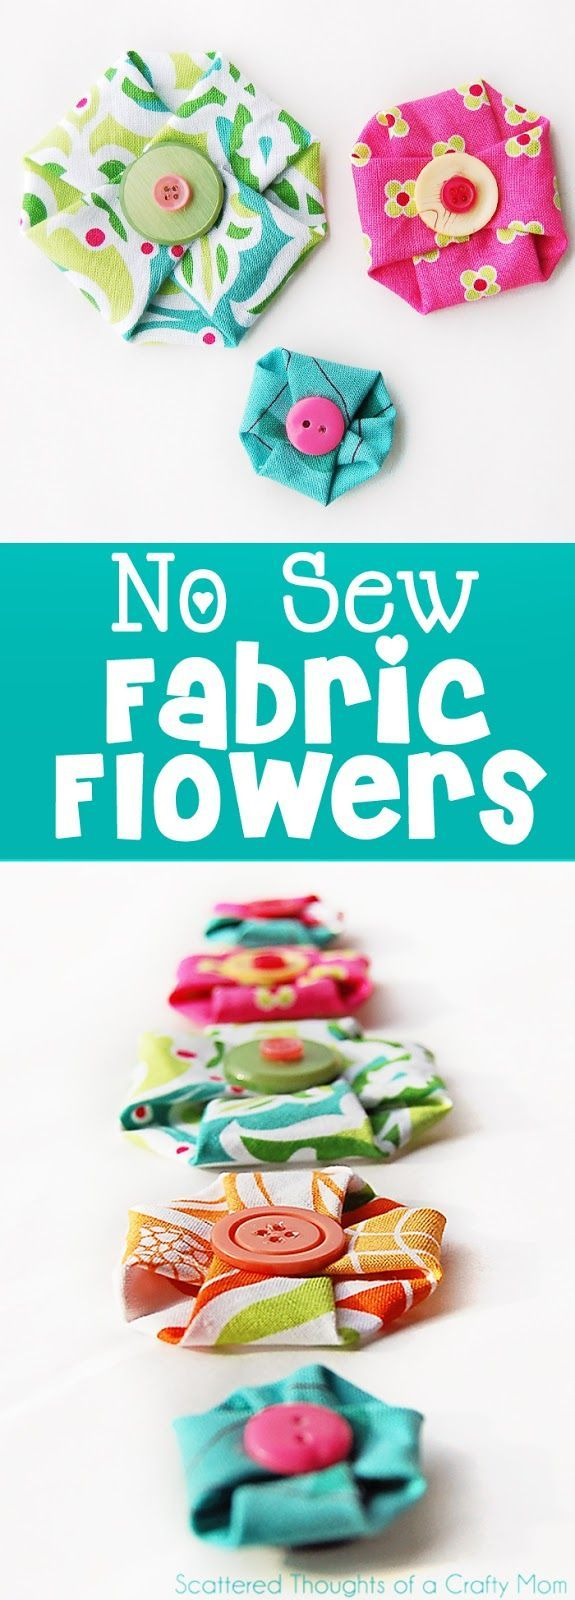 Make these adorable No Sew Fabric Flowers in less than a minute!